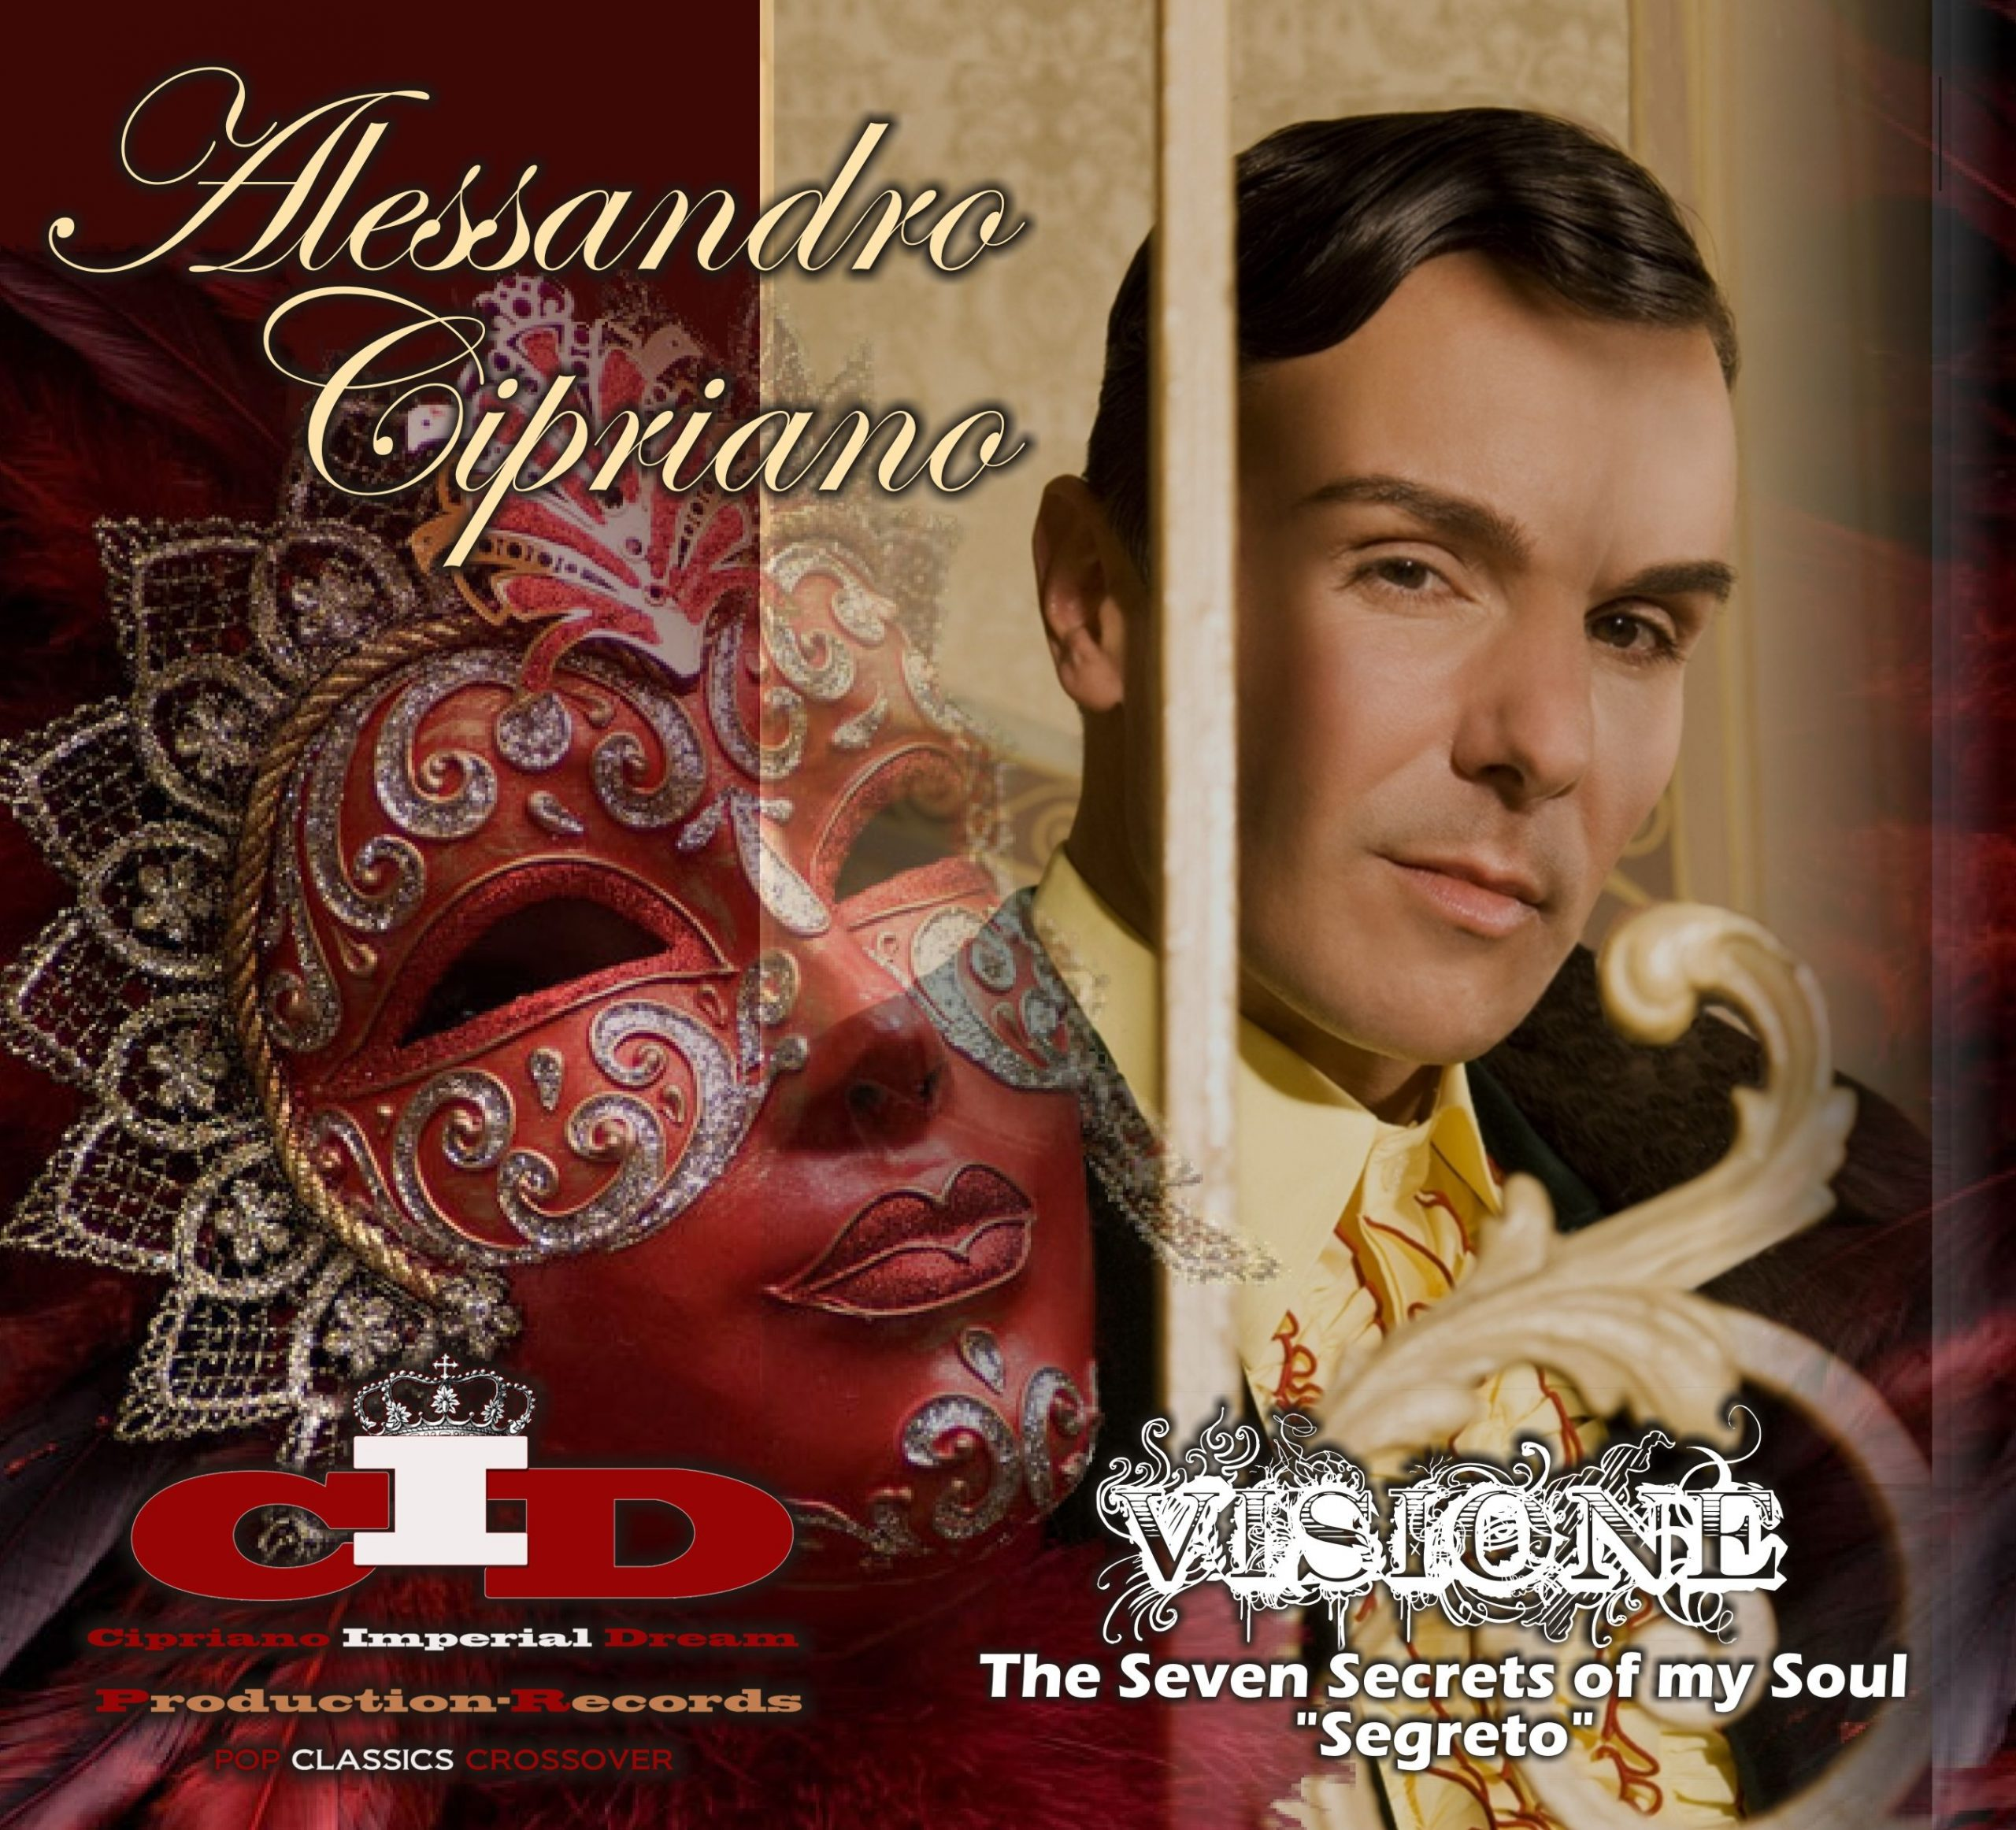 CD Visione by Alessandro Cipriano